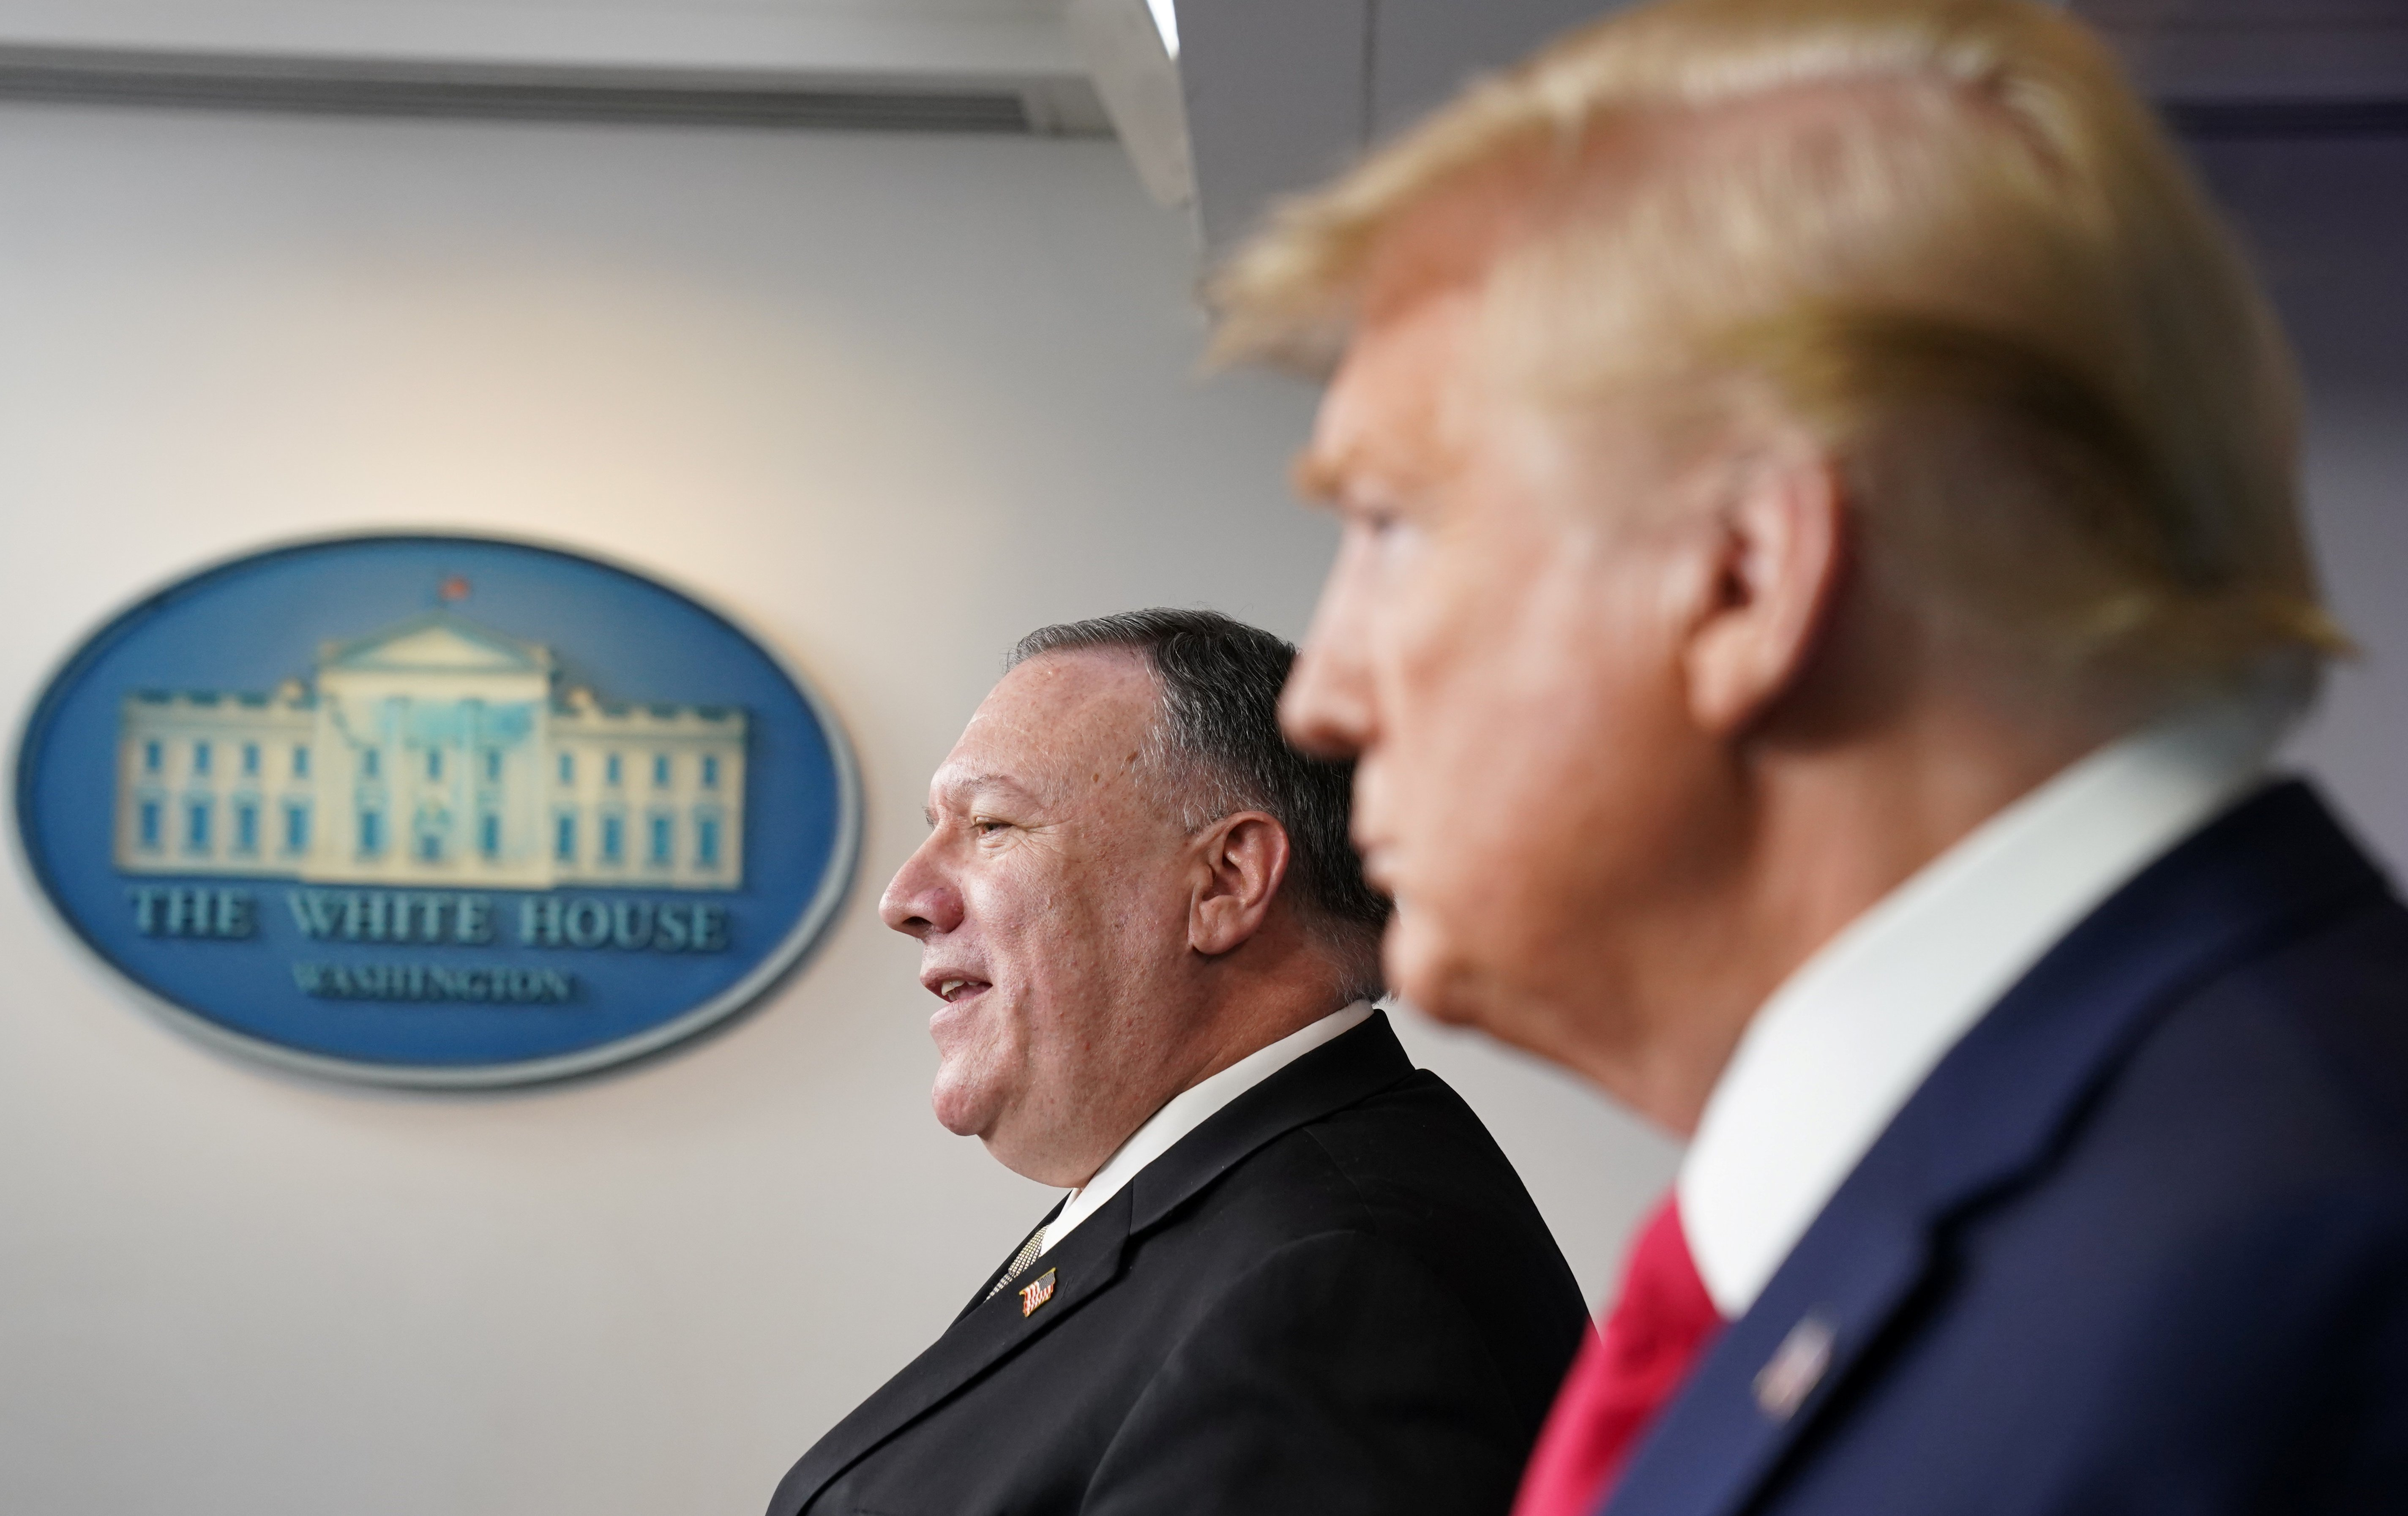 U.S. President Donald Trump listens as Secretary of State Mike Pompeo addresses the daily coronavirus task force briefing at the White House in Washington, U.S., Apr. 8, 2020. REUTERS/Kevin Lamarque